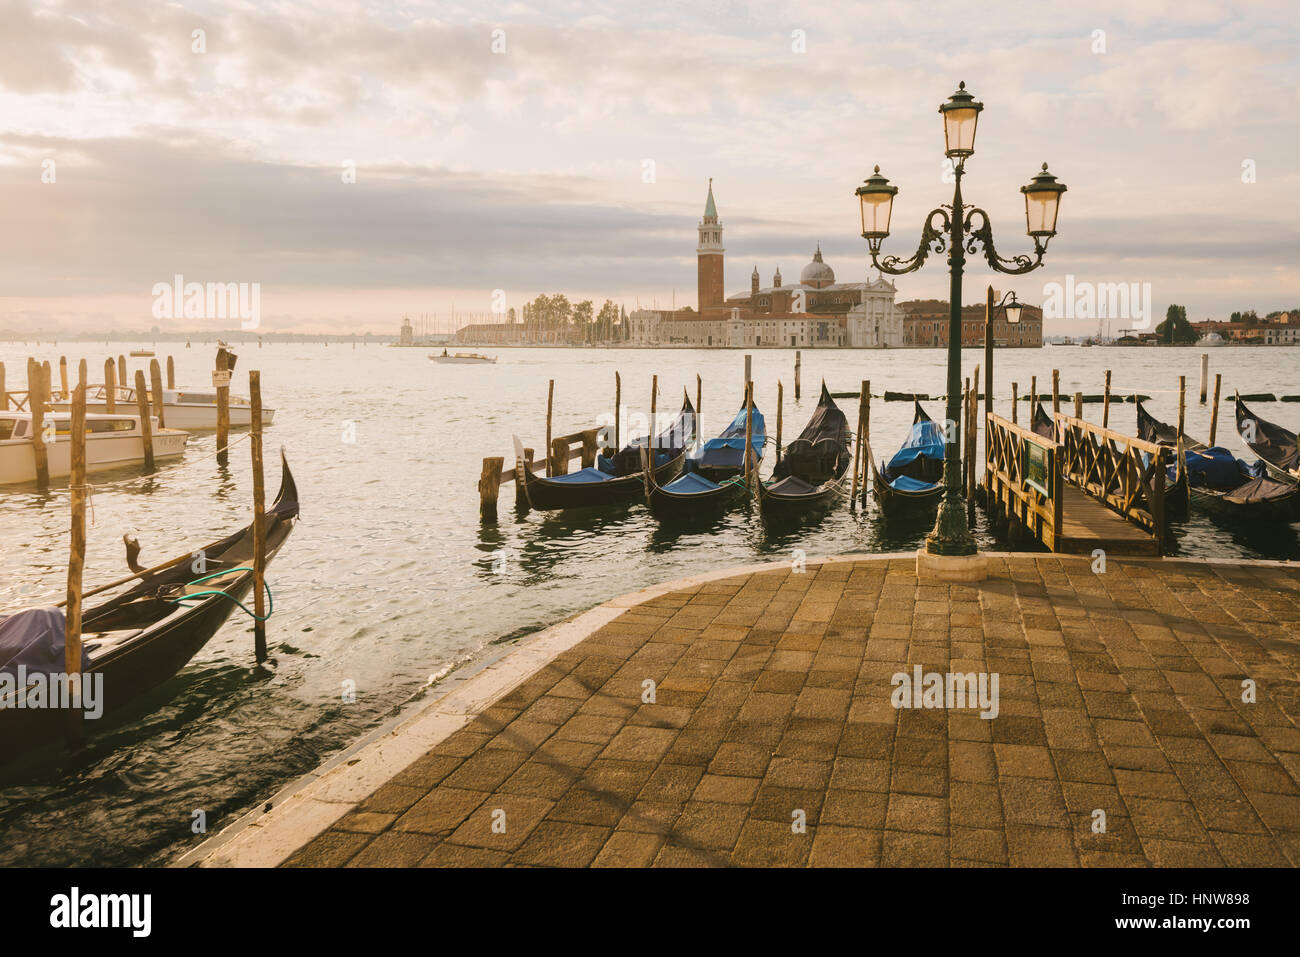 Gondolas in Grand Canal, San Giorgio Maggiore Island in background, Venice, Italy - Stock Image